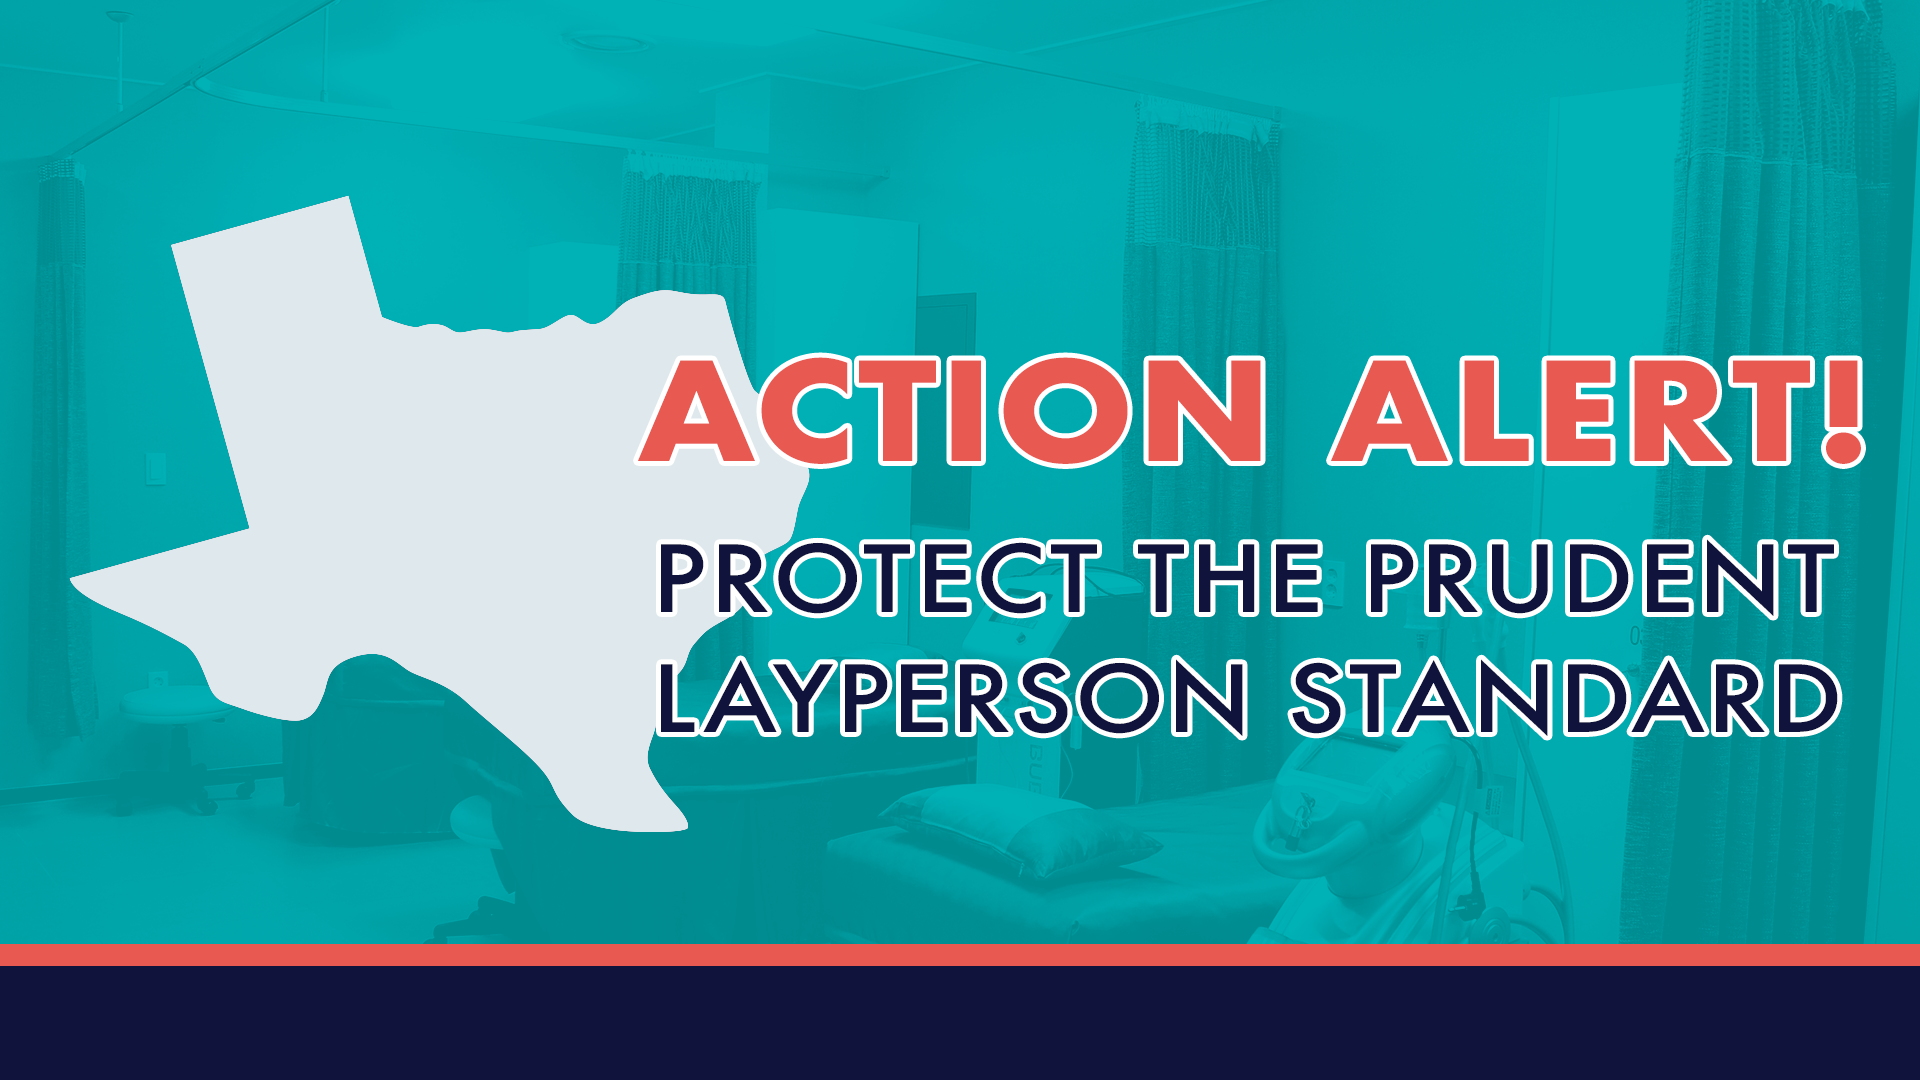 Protect the Prudent Layperson